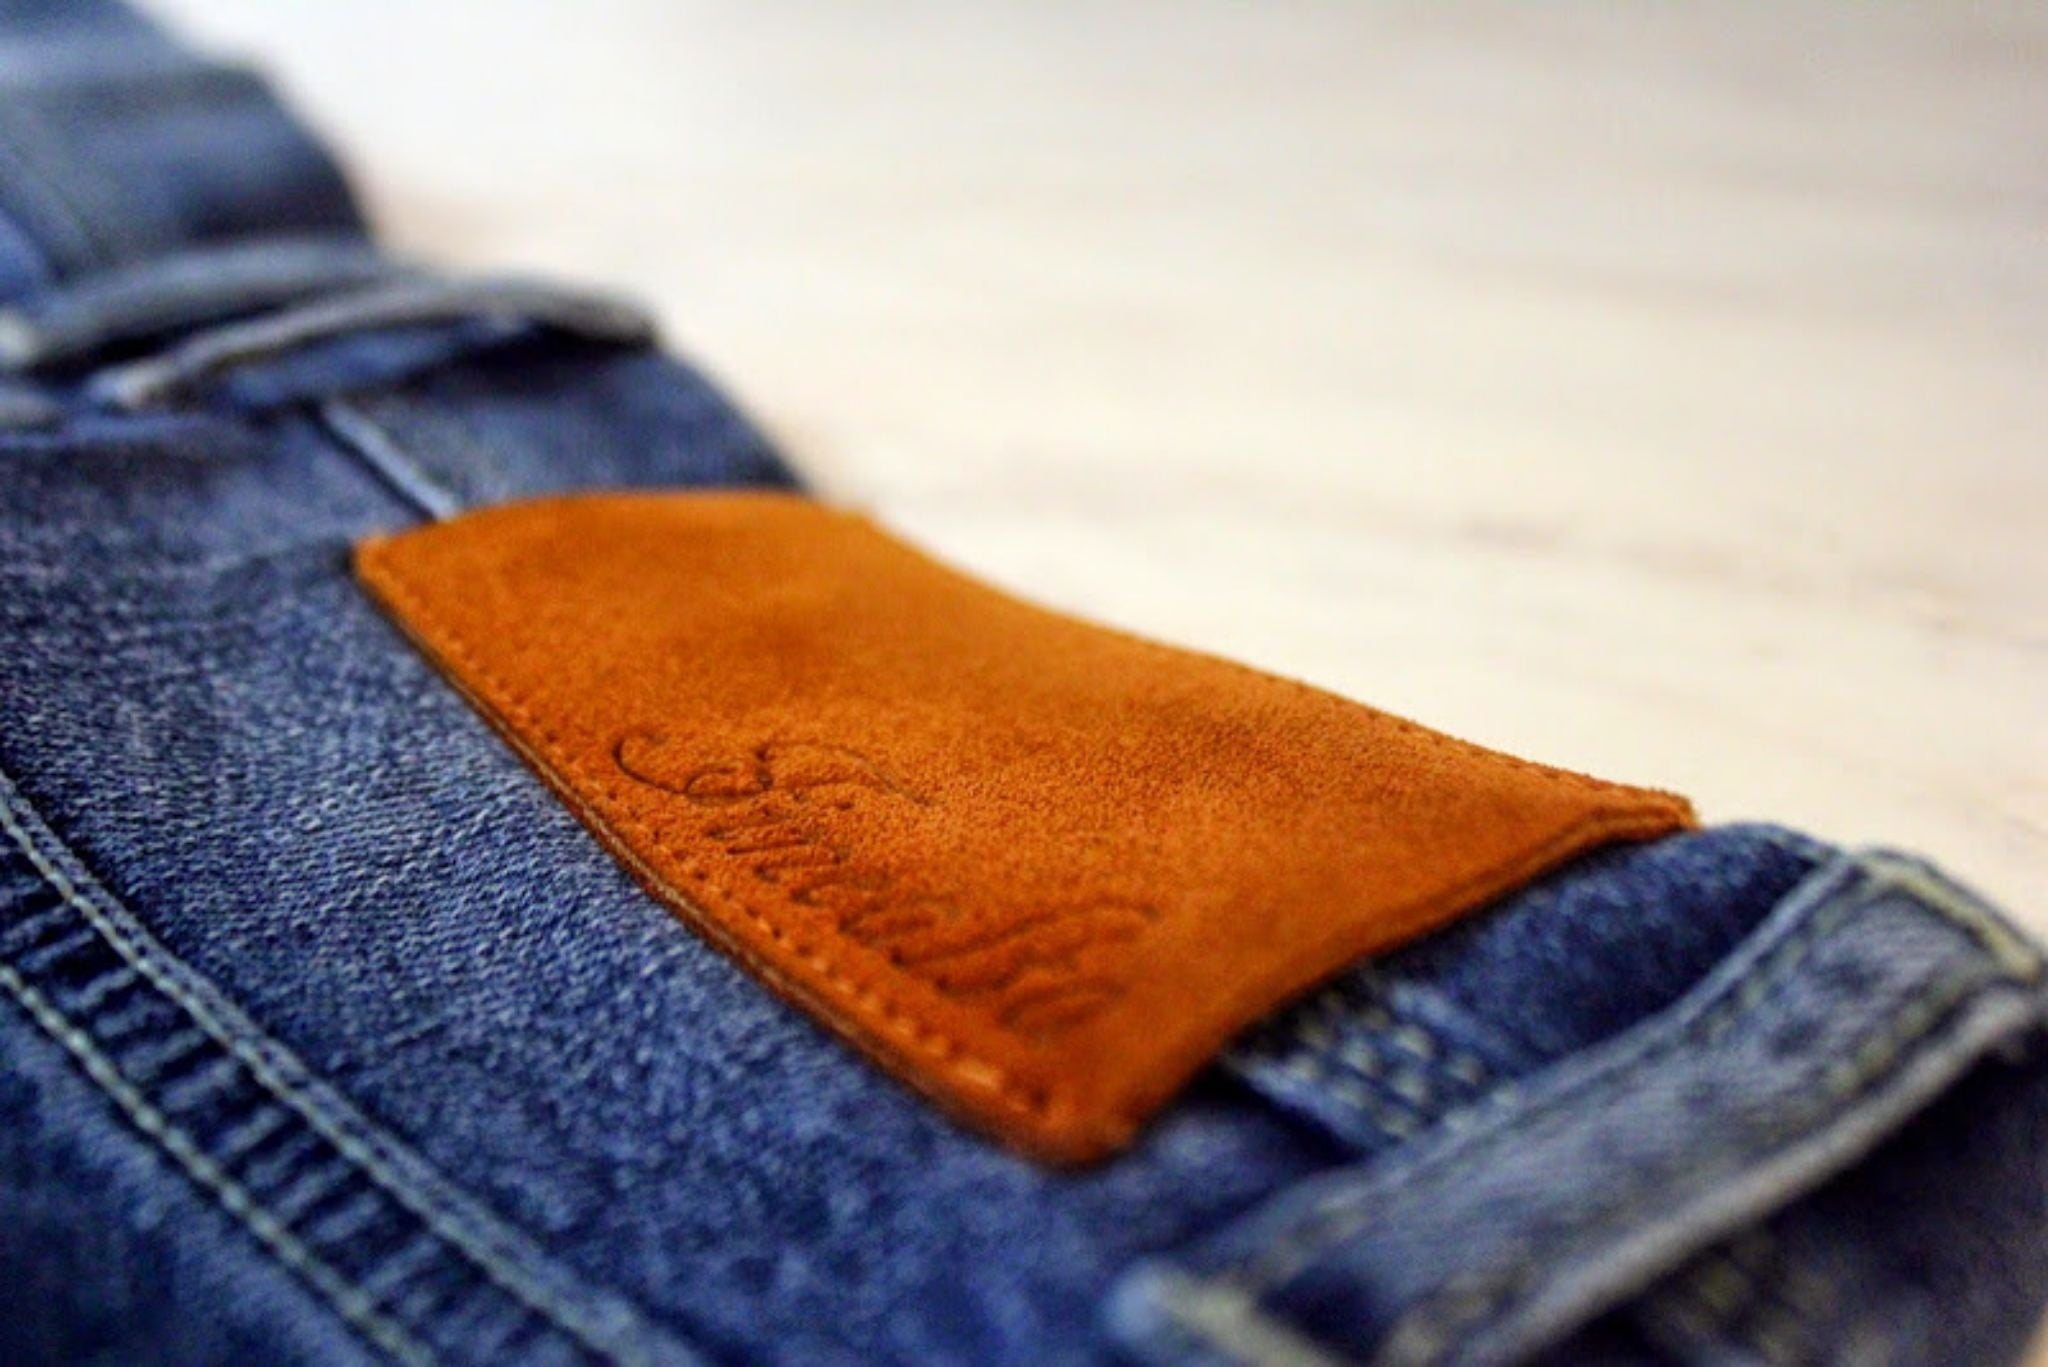 Finealta light colored denim